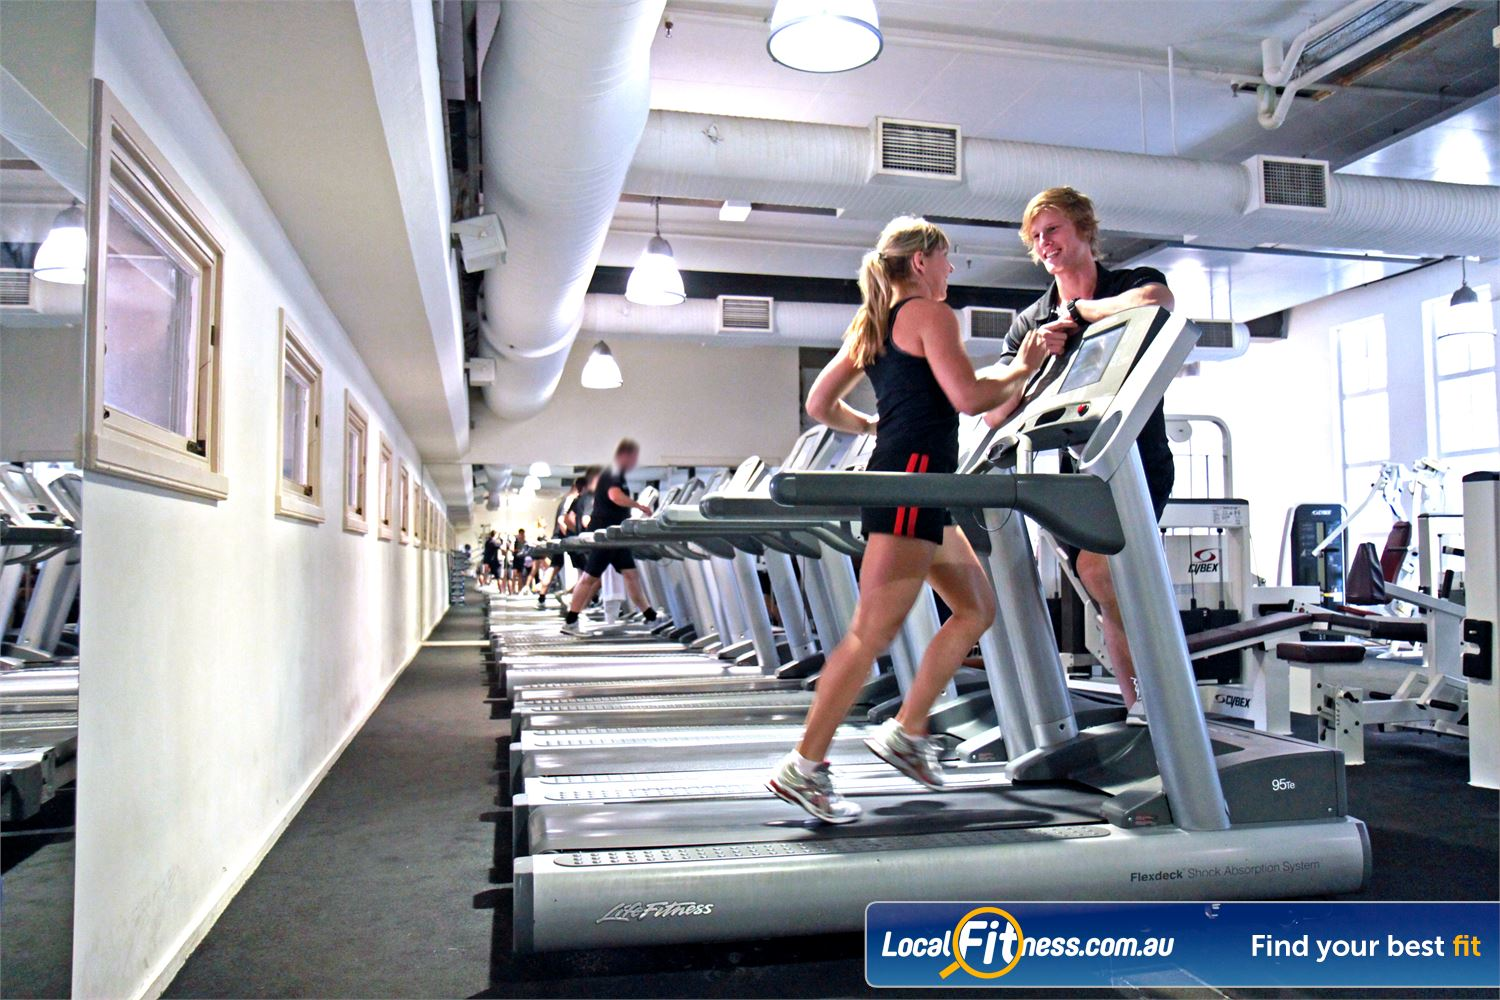 Goodlife Health Clubs Martin Place Sydney Our friendly Sydney Martin Place gym staff can help you with your cardio training.